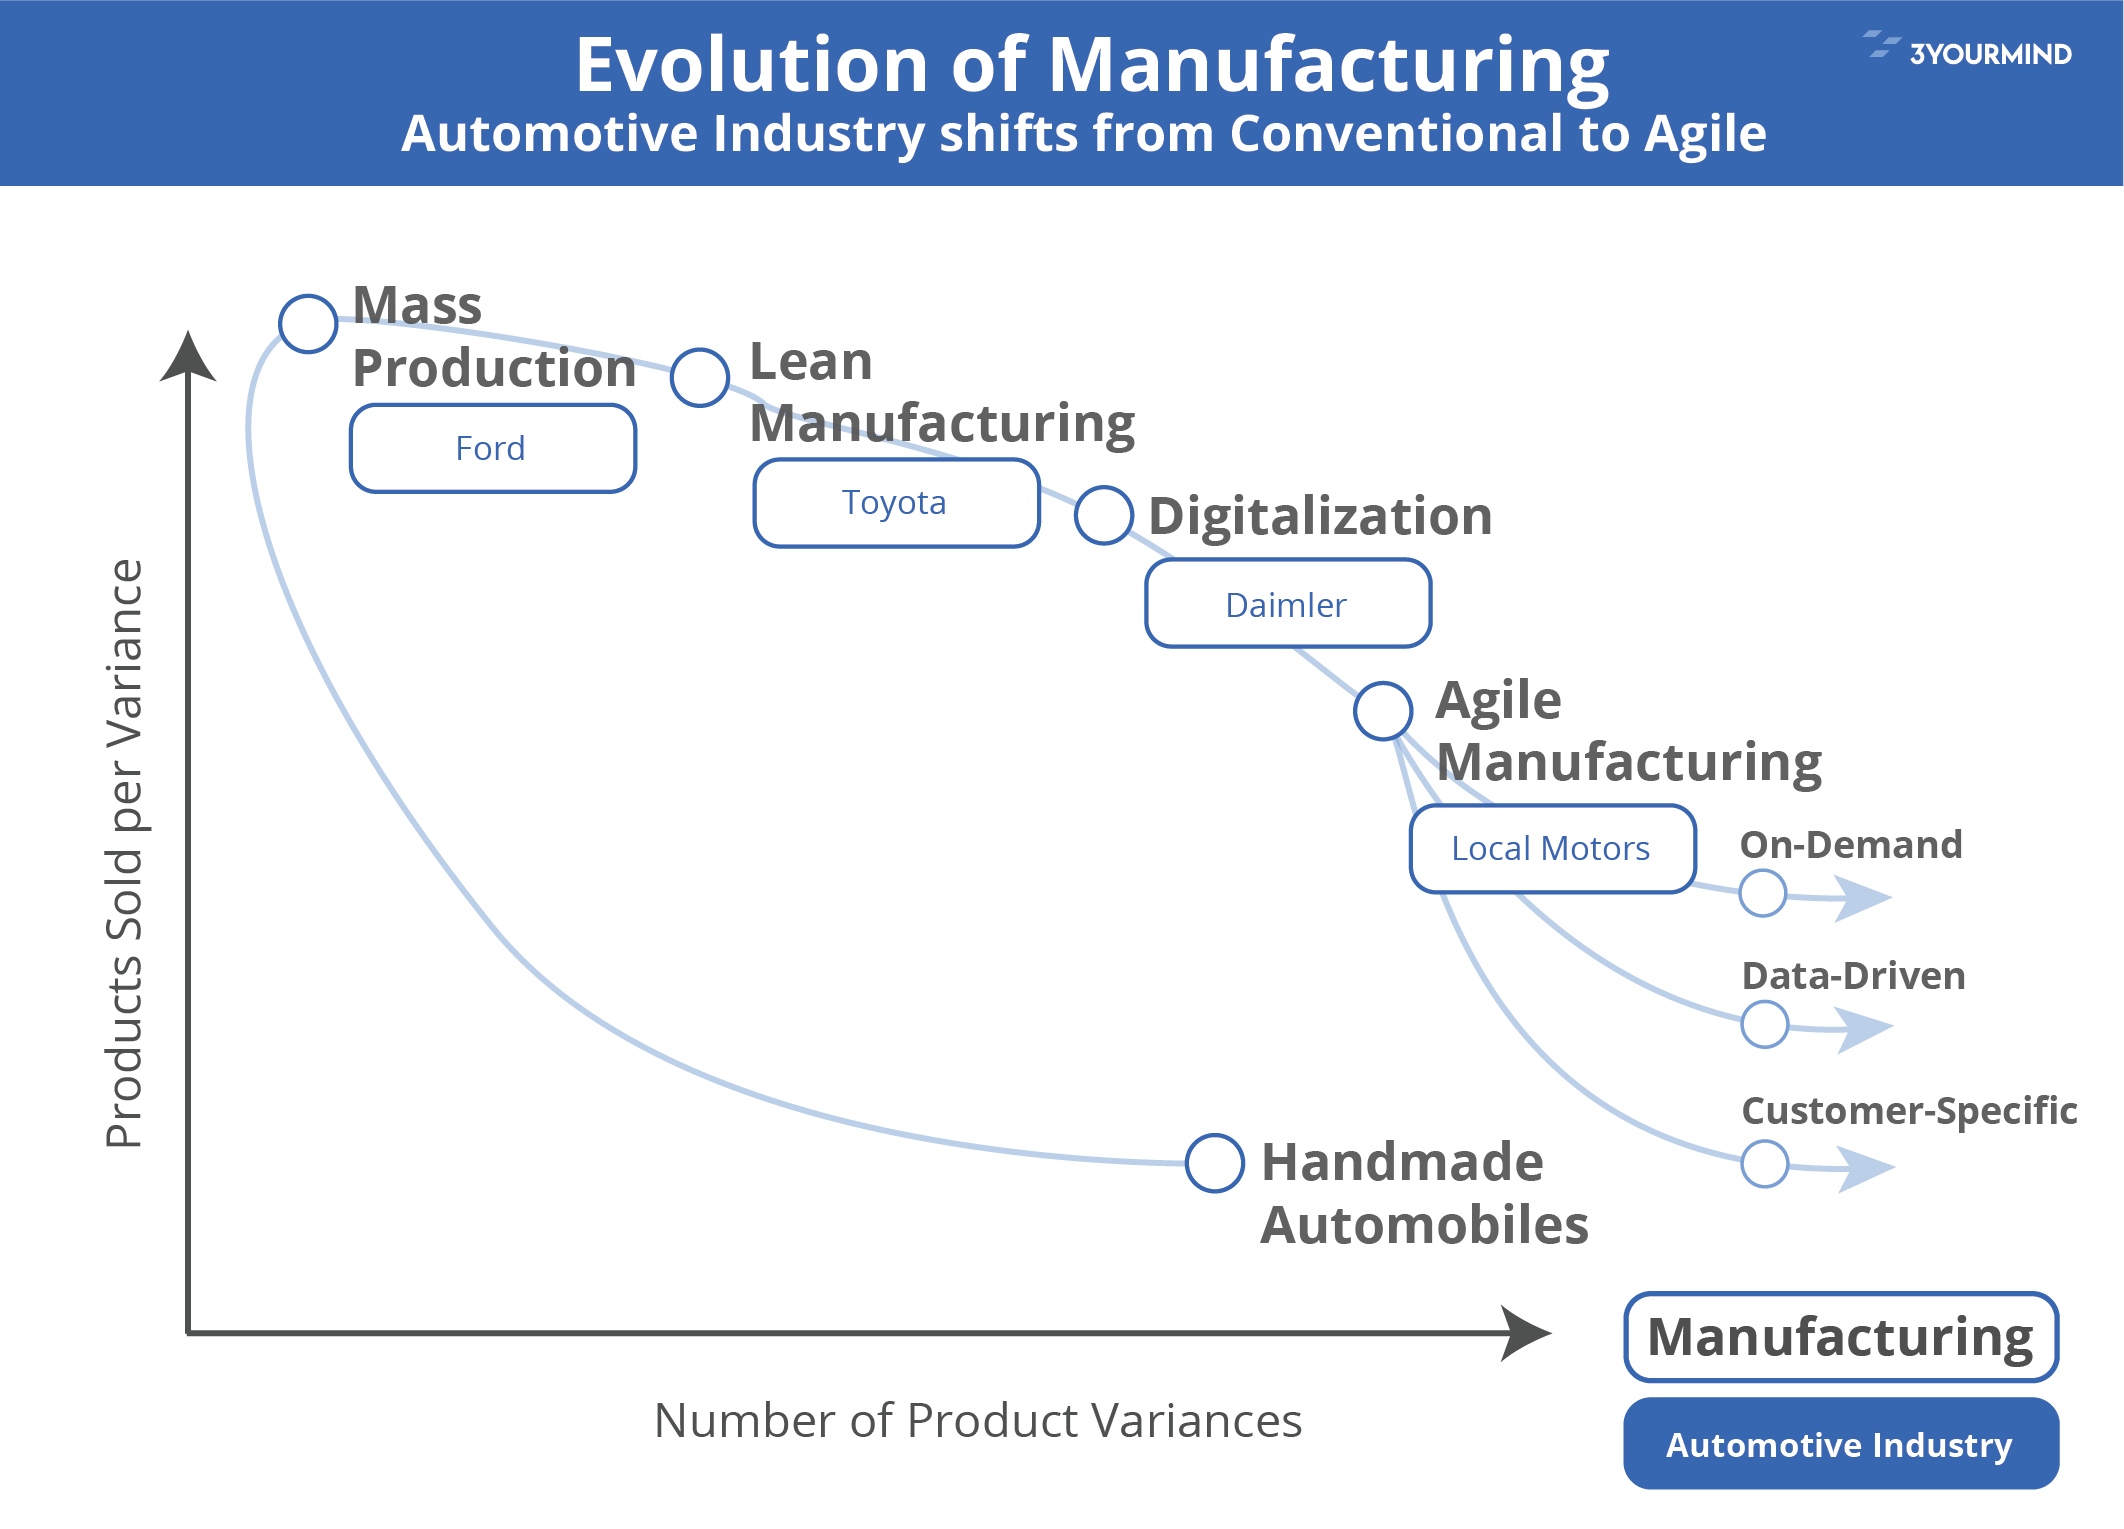 Evolution of manufacturing - from Conventional to Agile Manufacturing